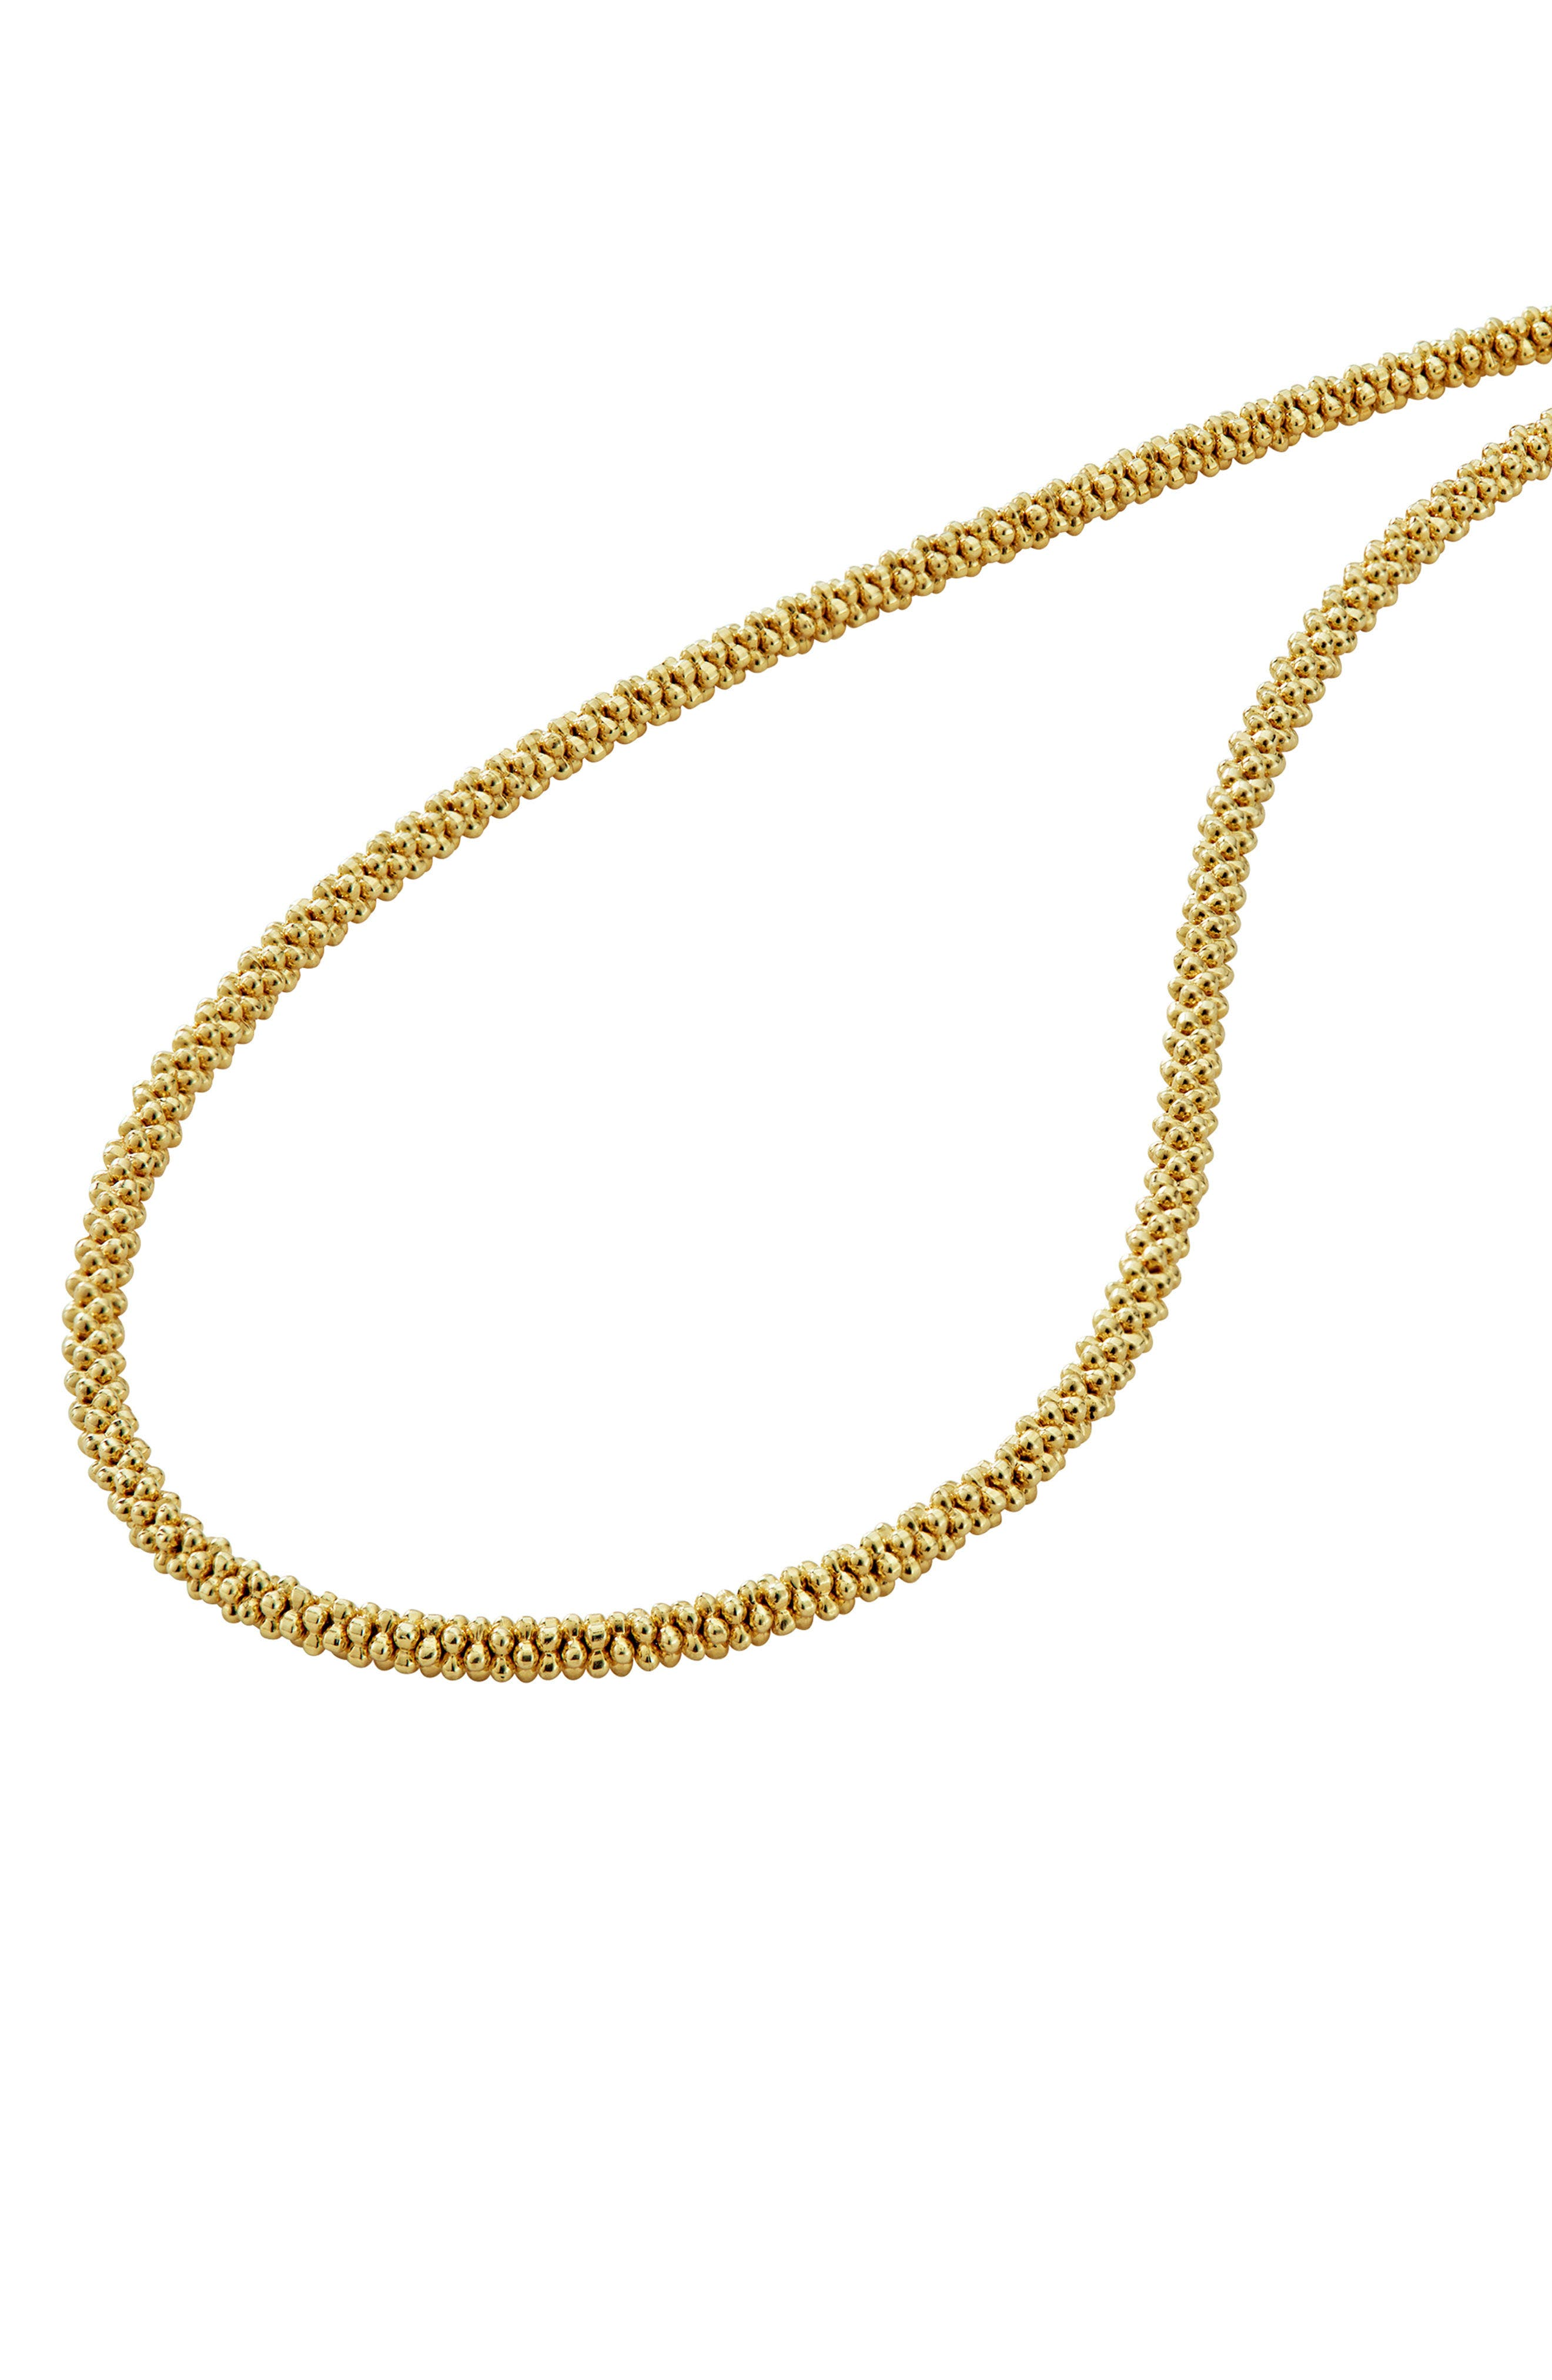 Caviar Gold Rope Necklace,                             Alternate thumbnail 5, color,                             Gold